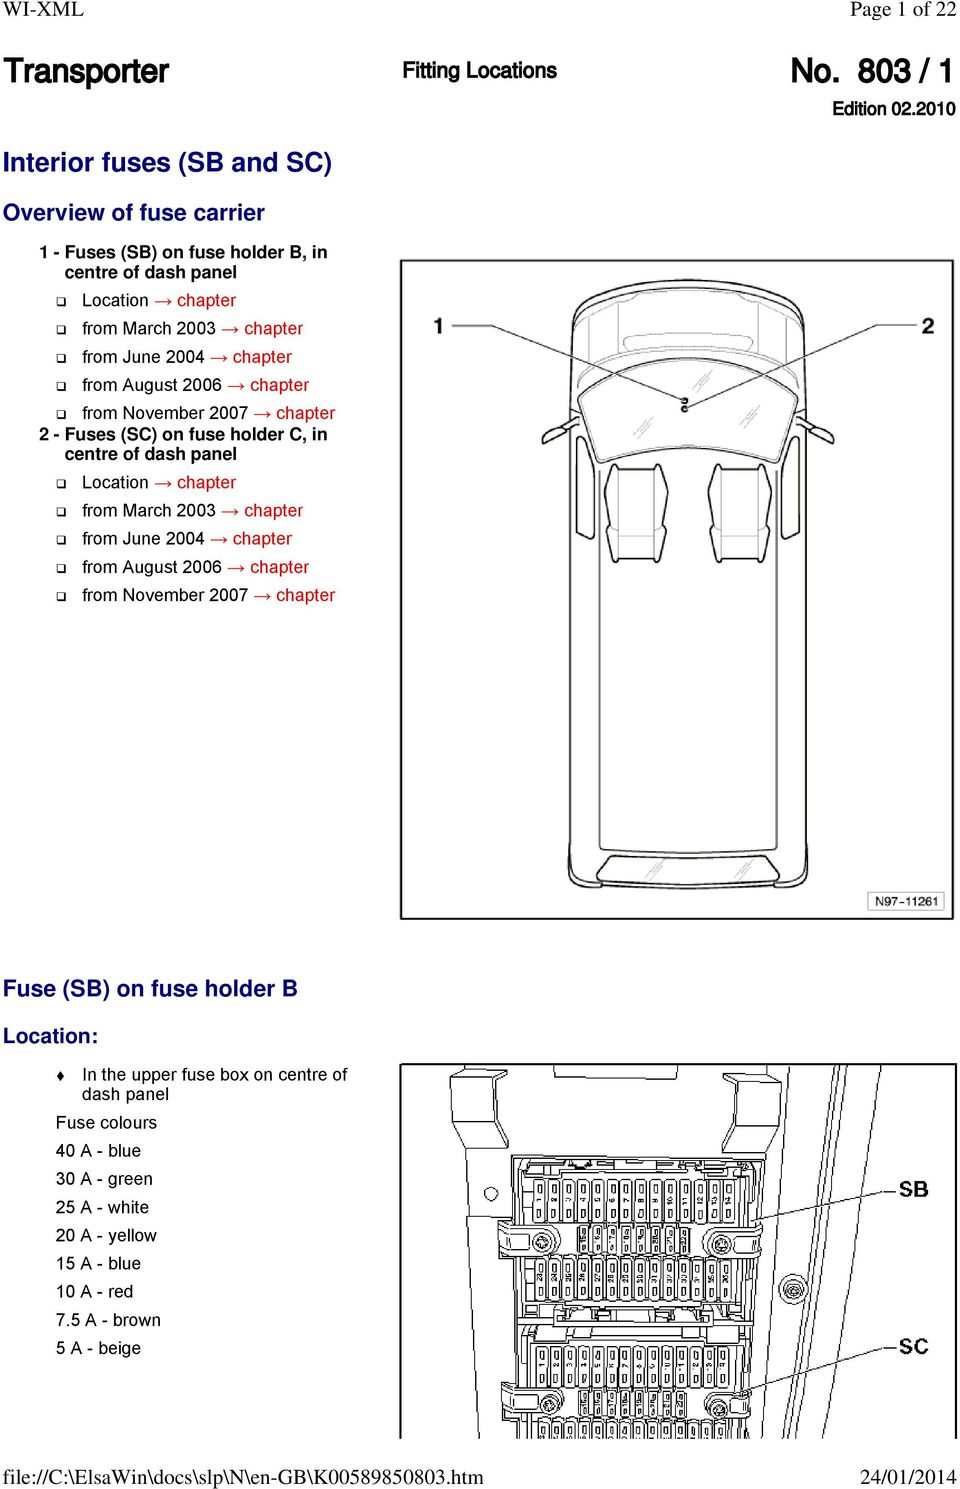 2012 Chevy Traverse Fuse Box Location Transporter Fitting Locations No 803 1 Pdf Chapter From August 2006 November 2007 2 Fuses Sc On